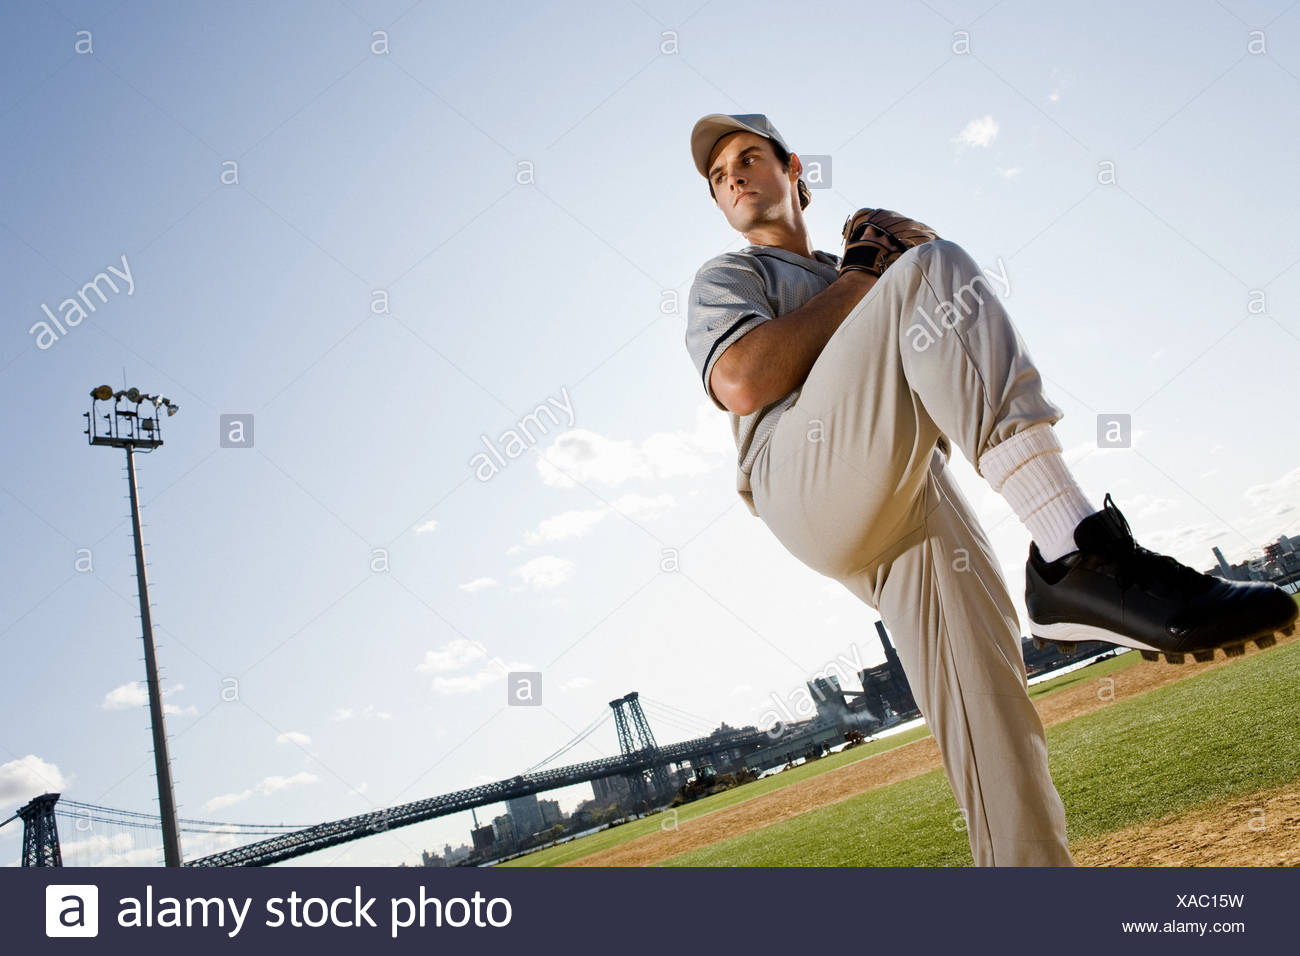 Baseball pitcher standing on one leg - Stock Image